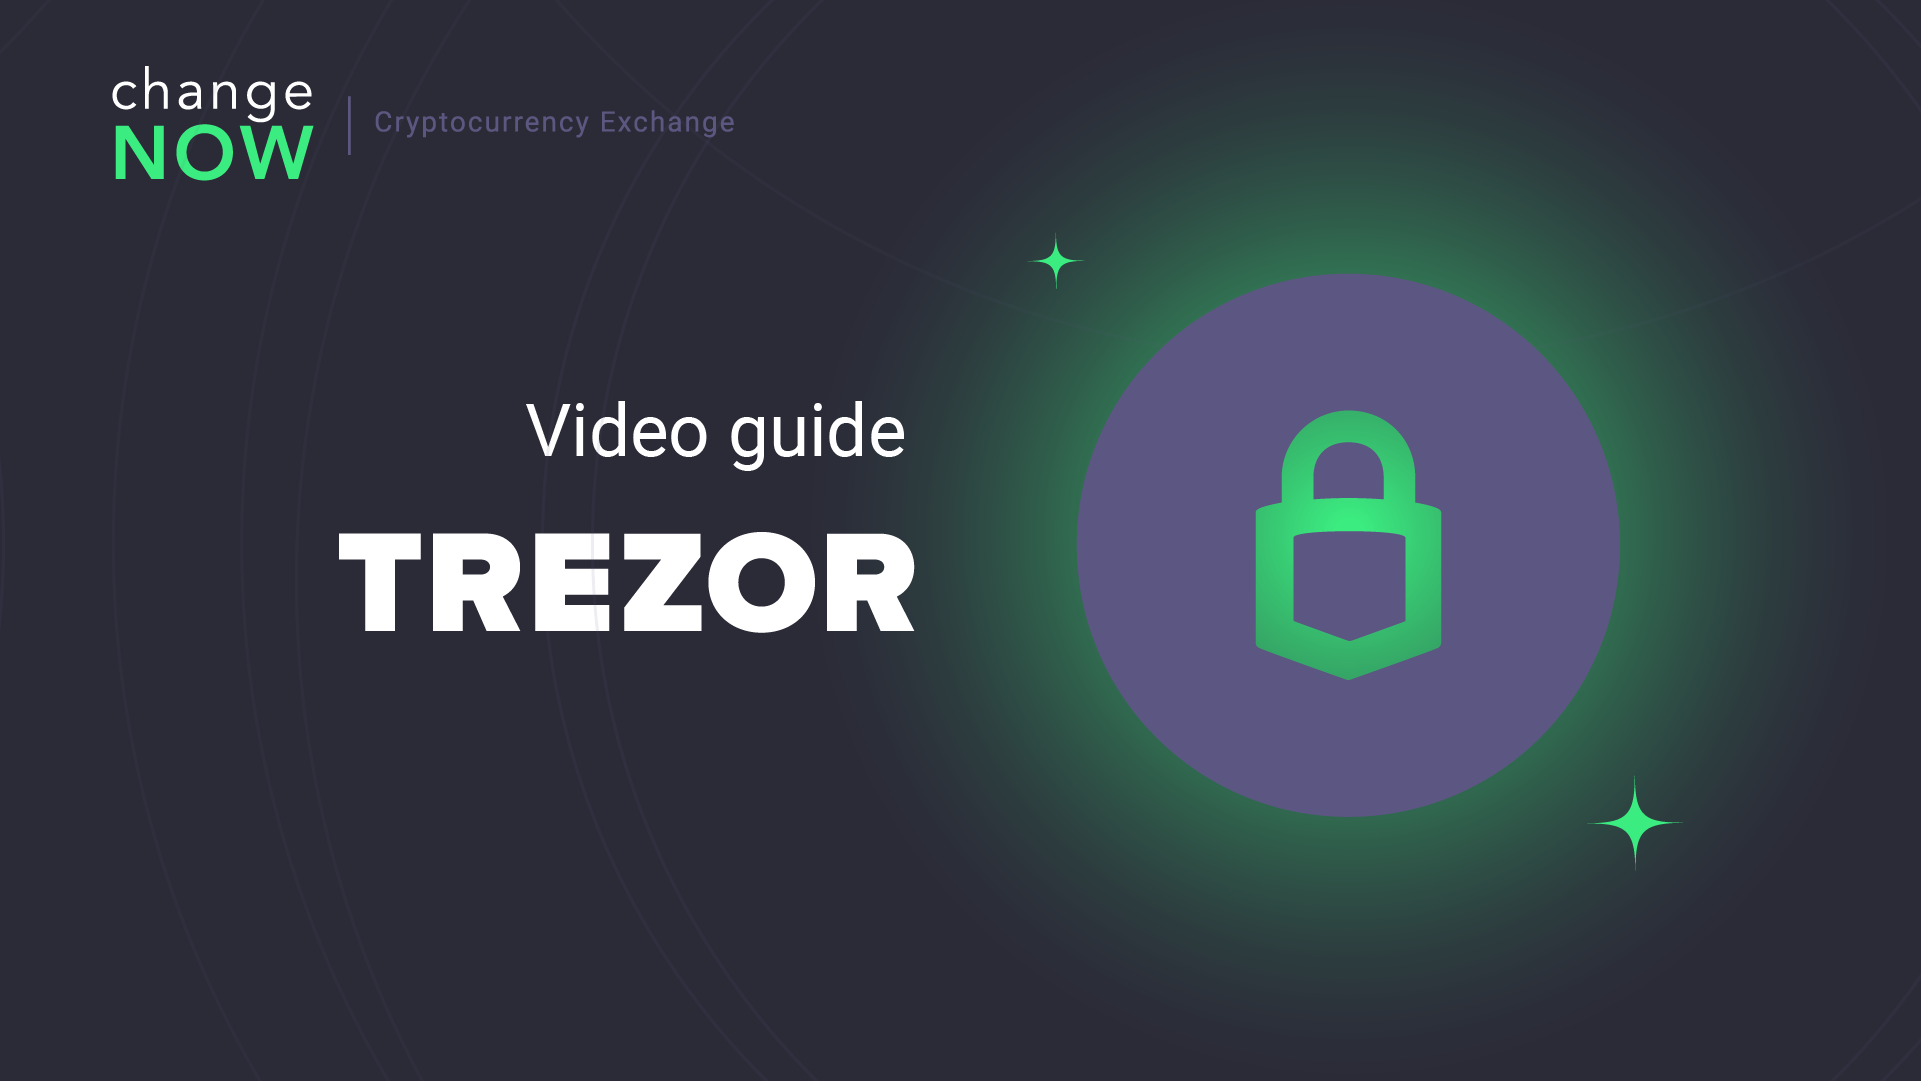 How To Perform A ChangeNOW Exchange In TREZOR Wallet [GUIDE]